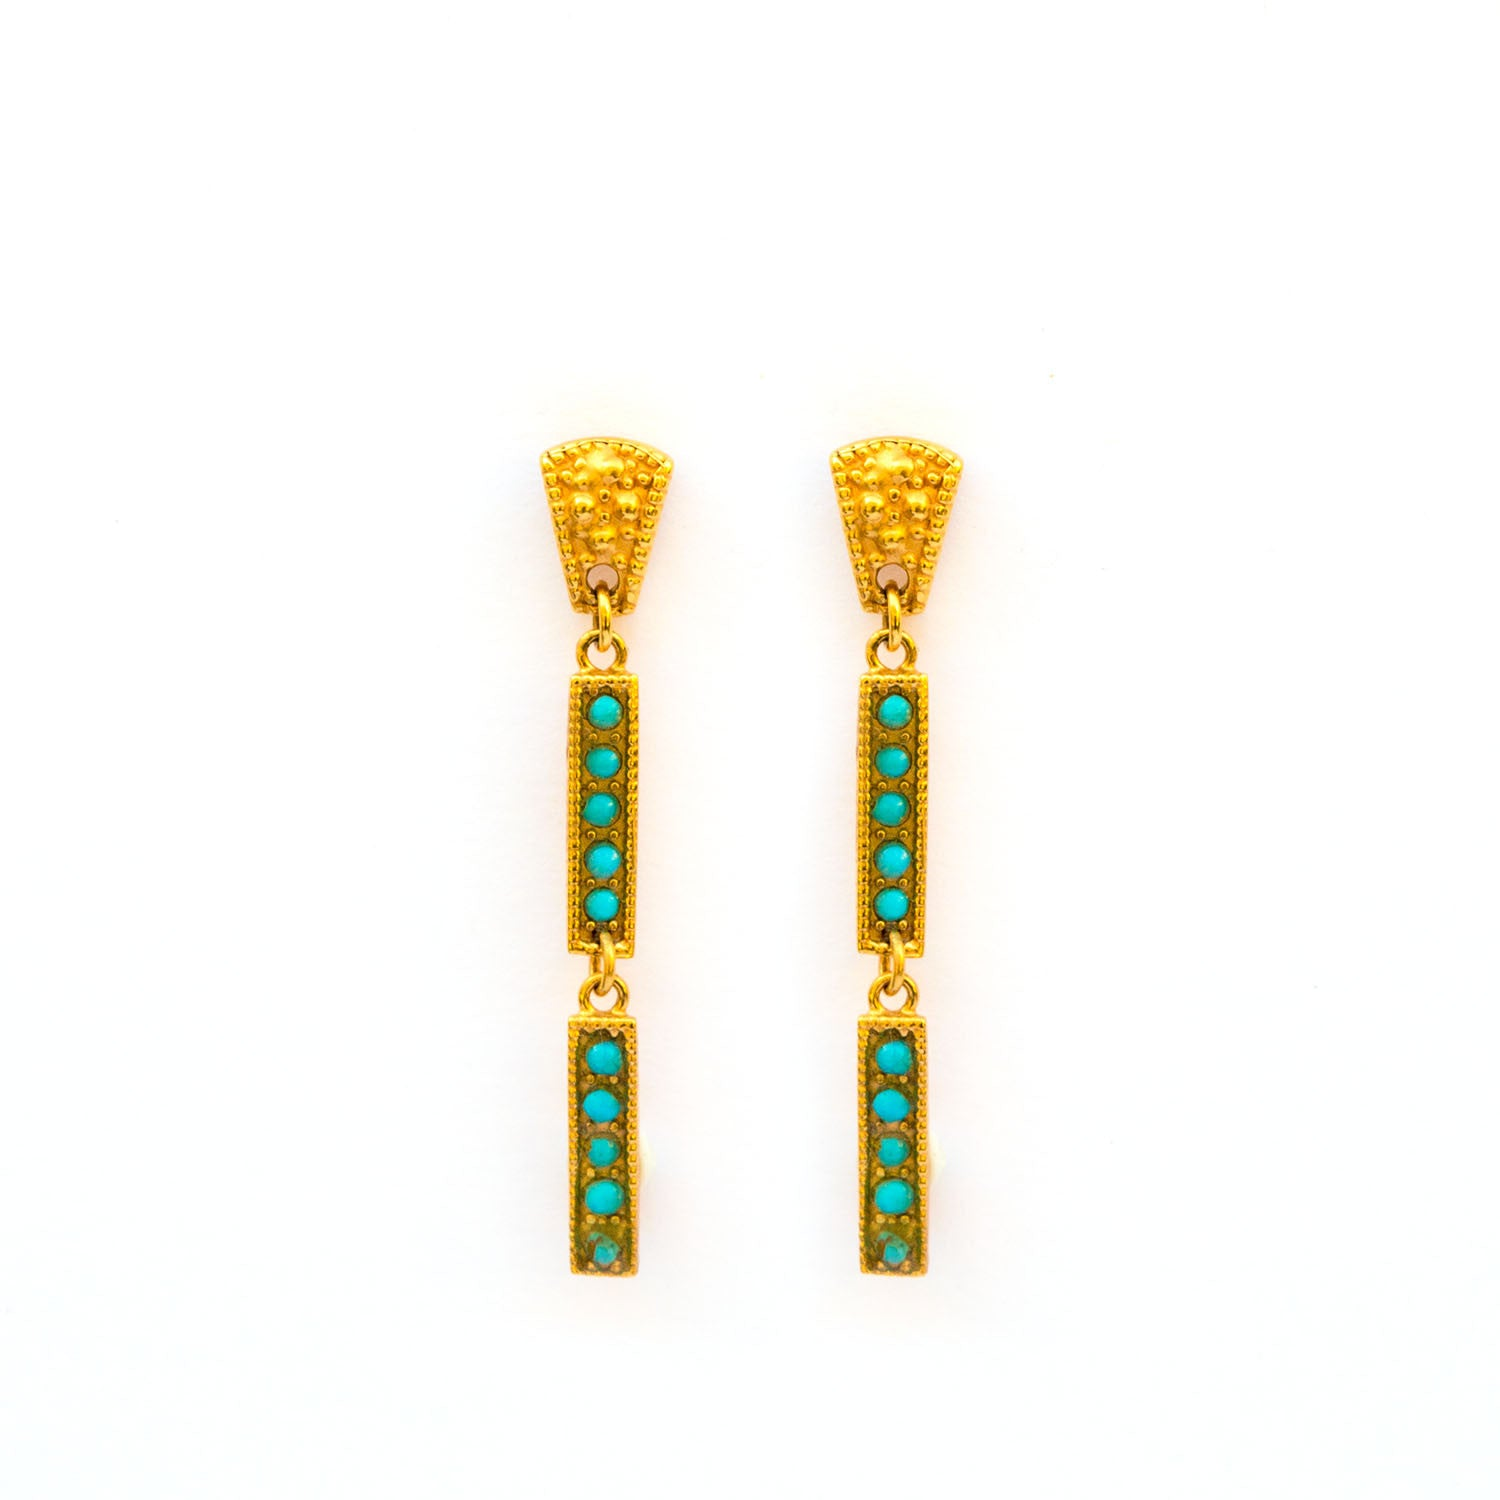 Coco\'s Liberty: Goddess earring | Jewelry -  Hiphunters Shop